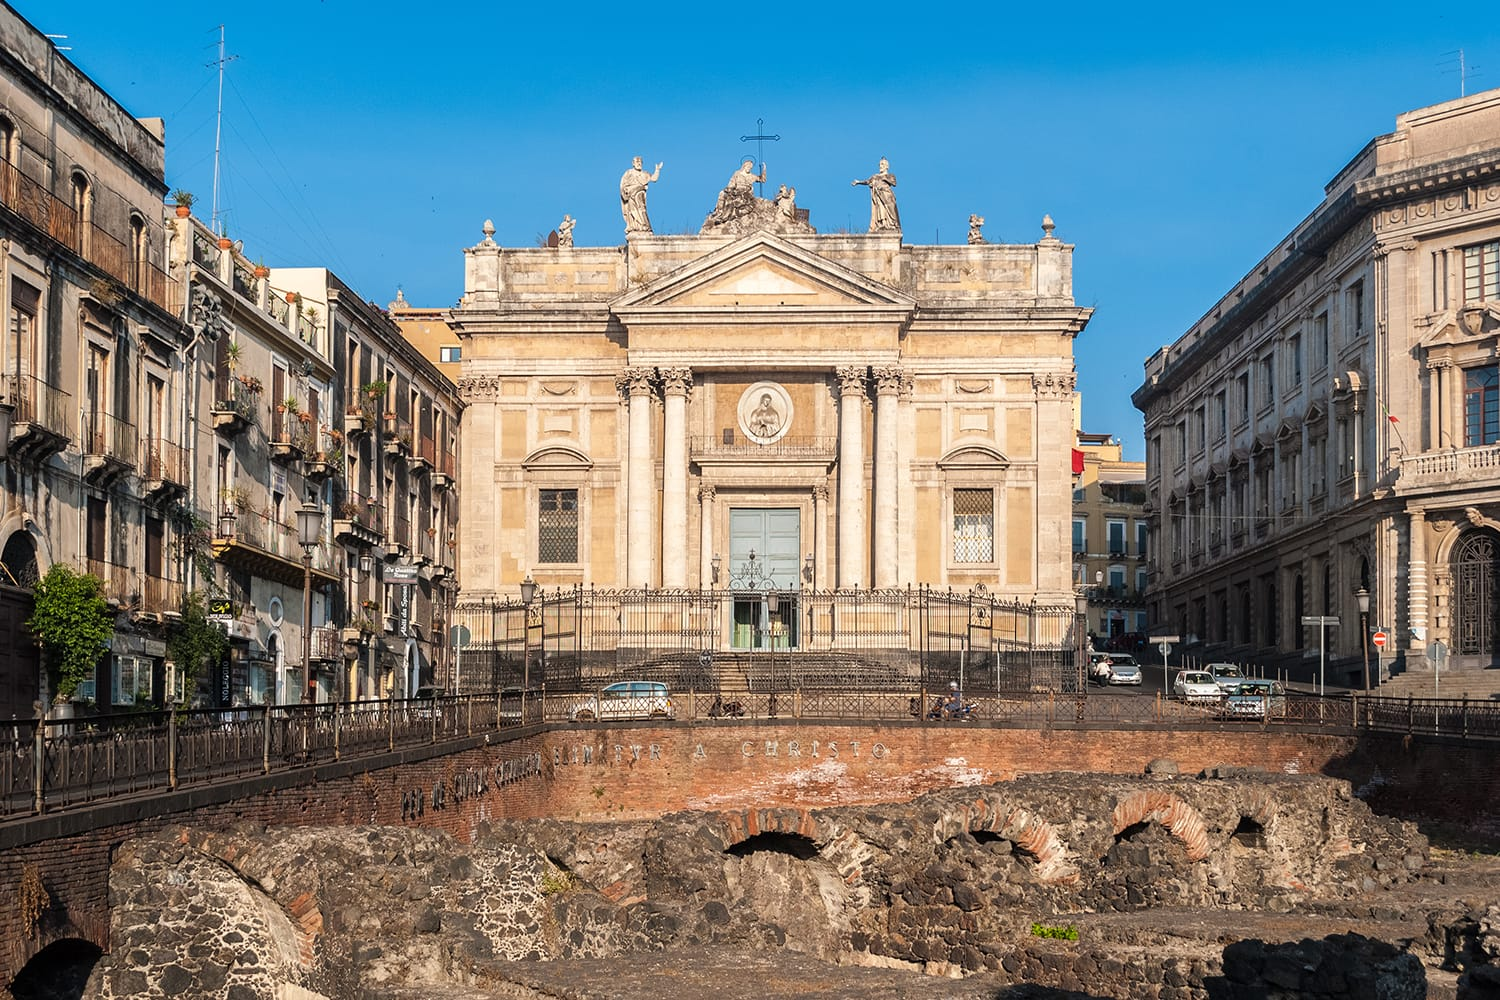 The church of San Biagio, known also as Sant'Agata alla Fornace, in Catania; in the foreground a glimpse of the roman amphitheatre